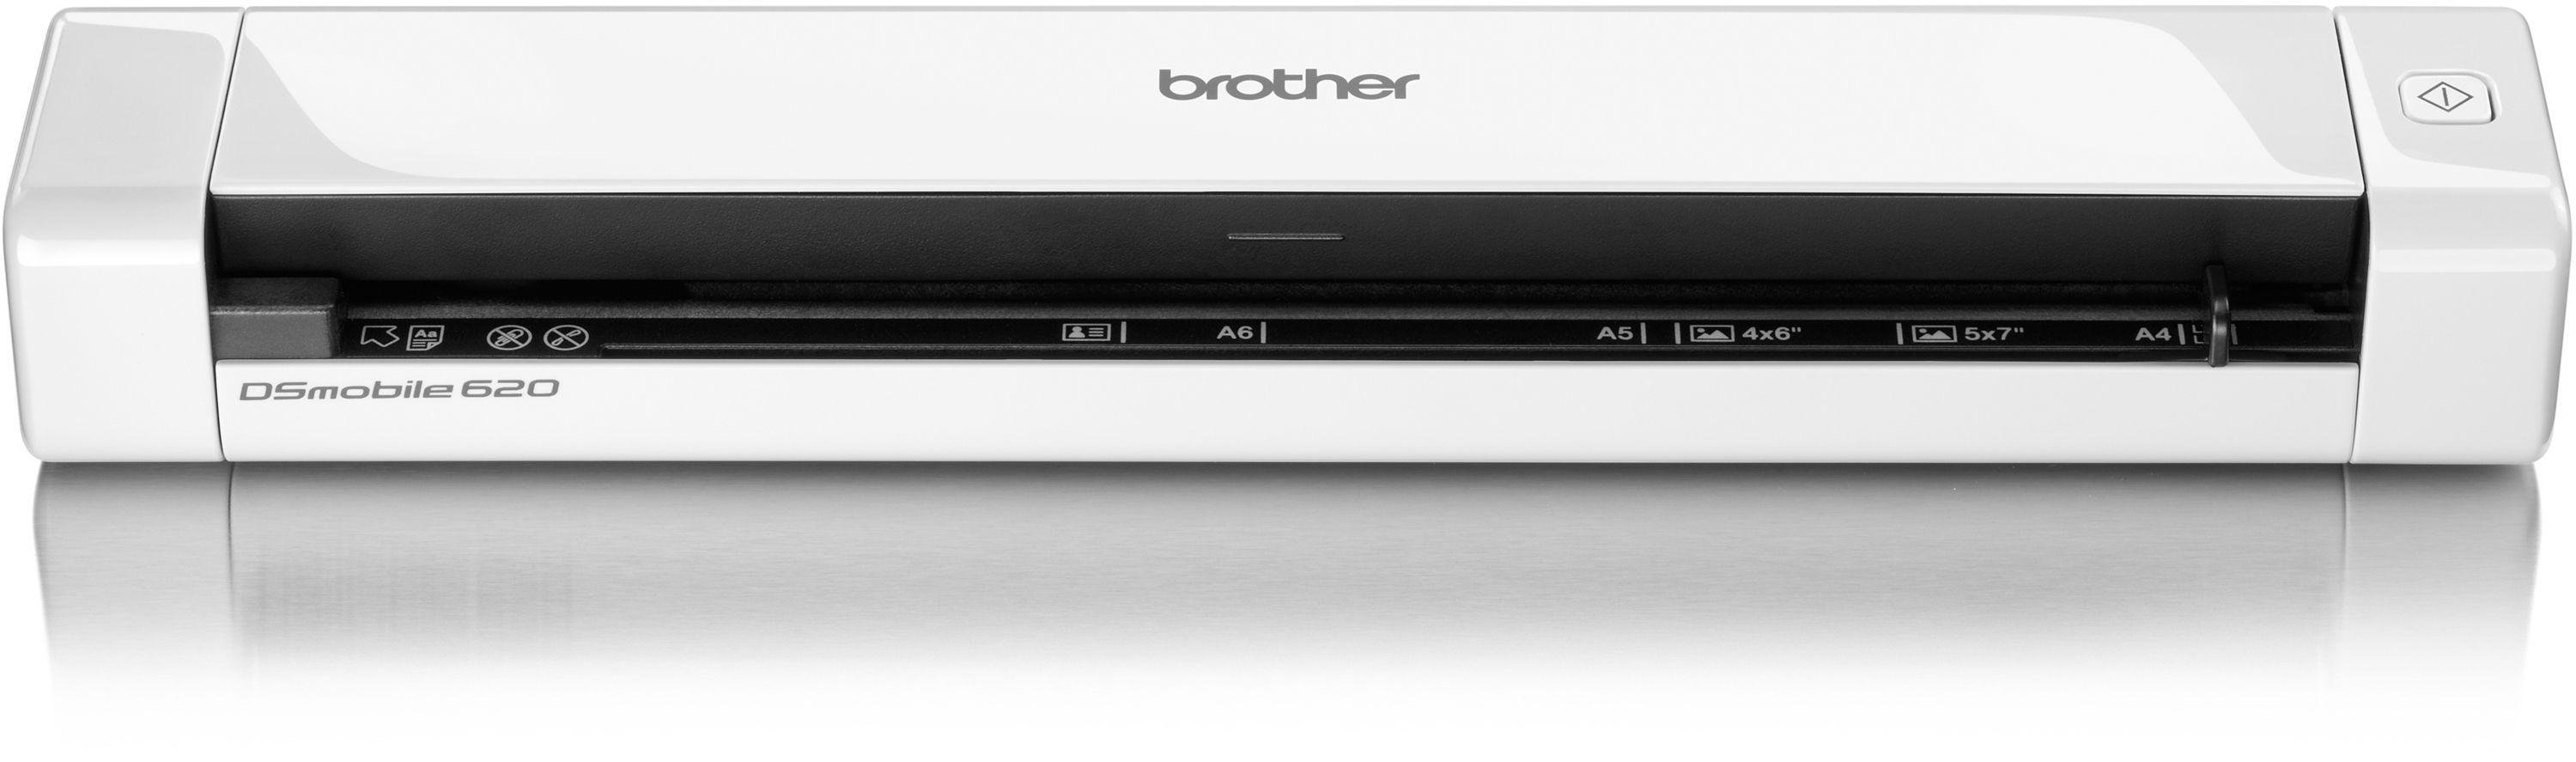 brother ds 620 mobile document scanner